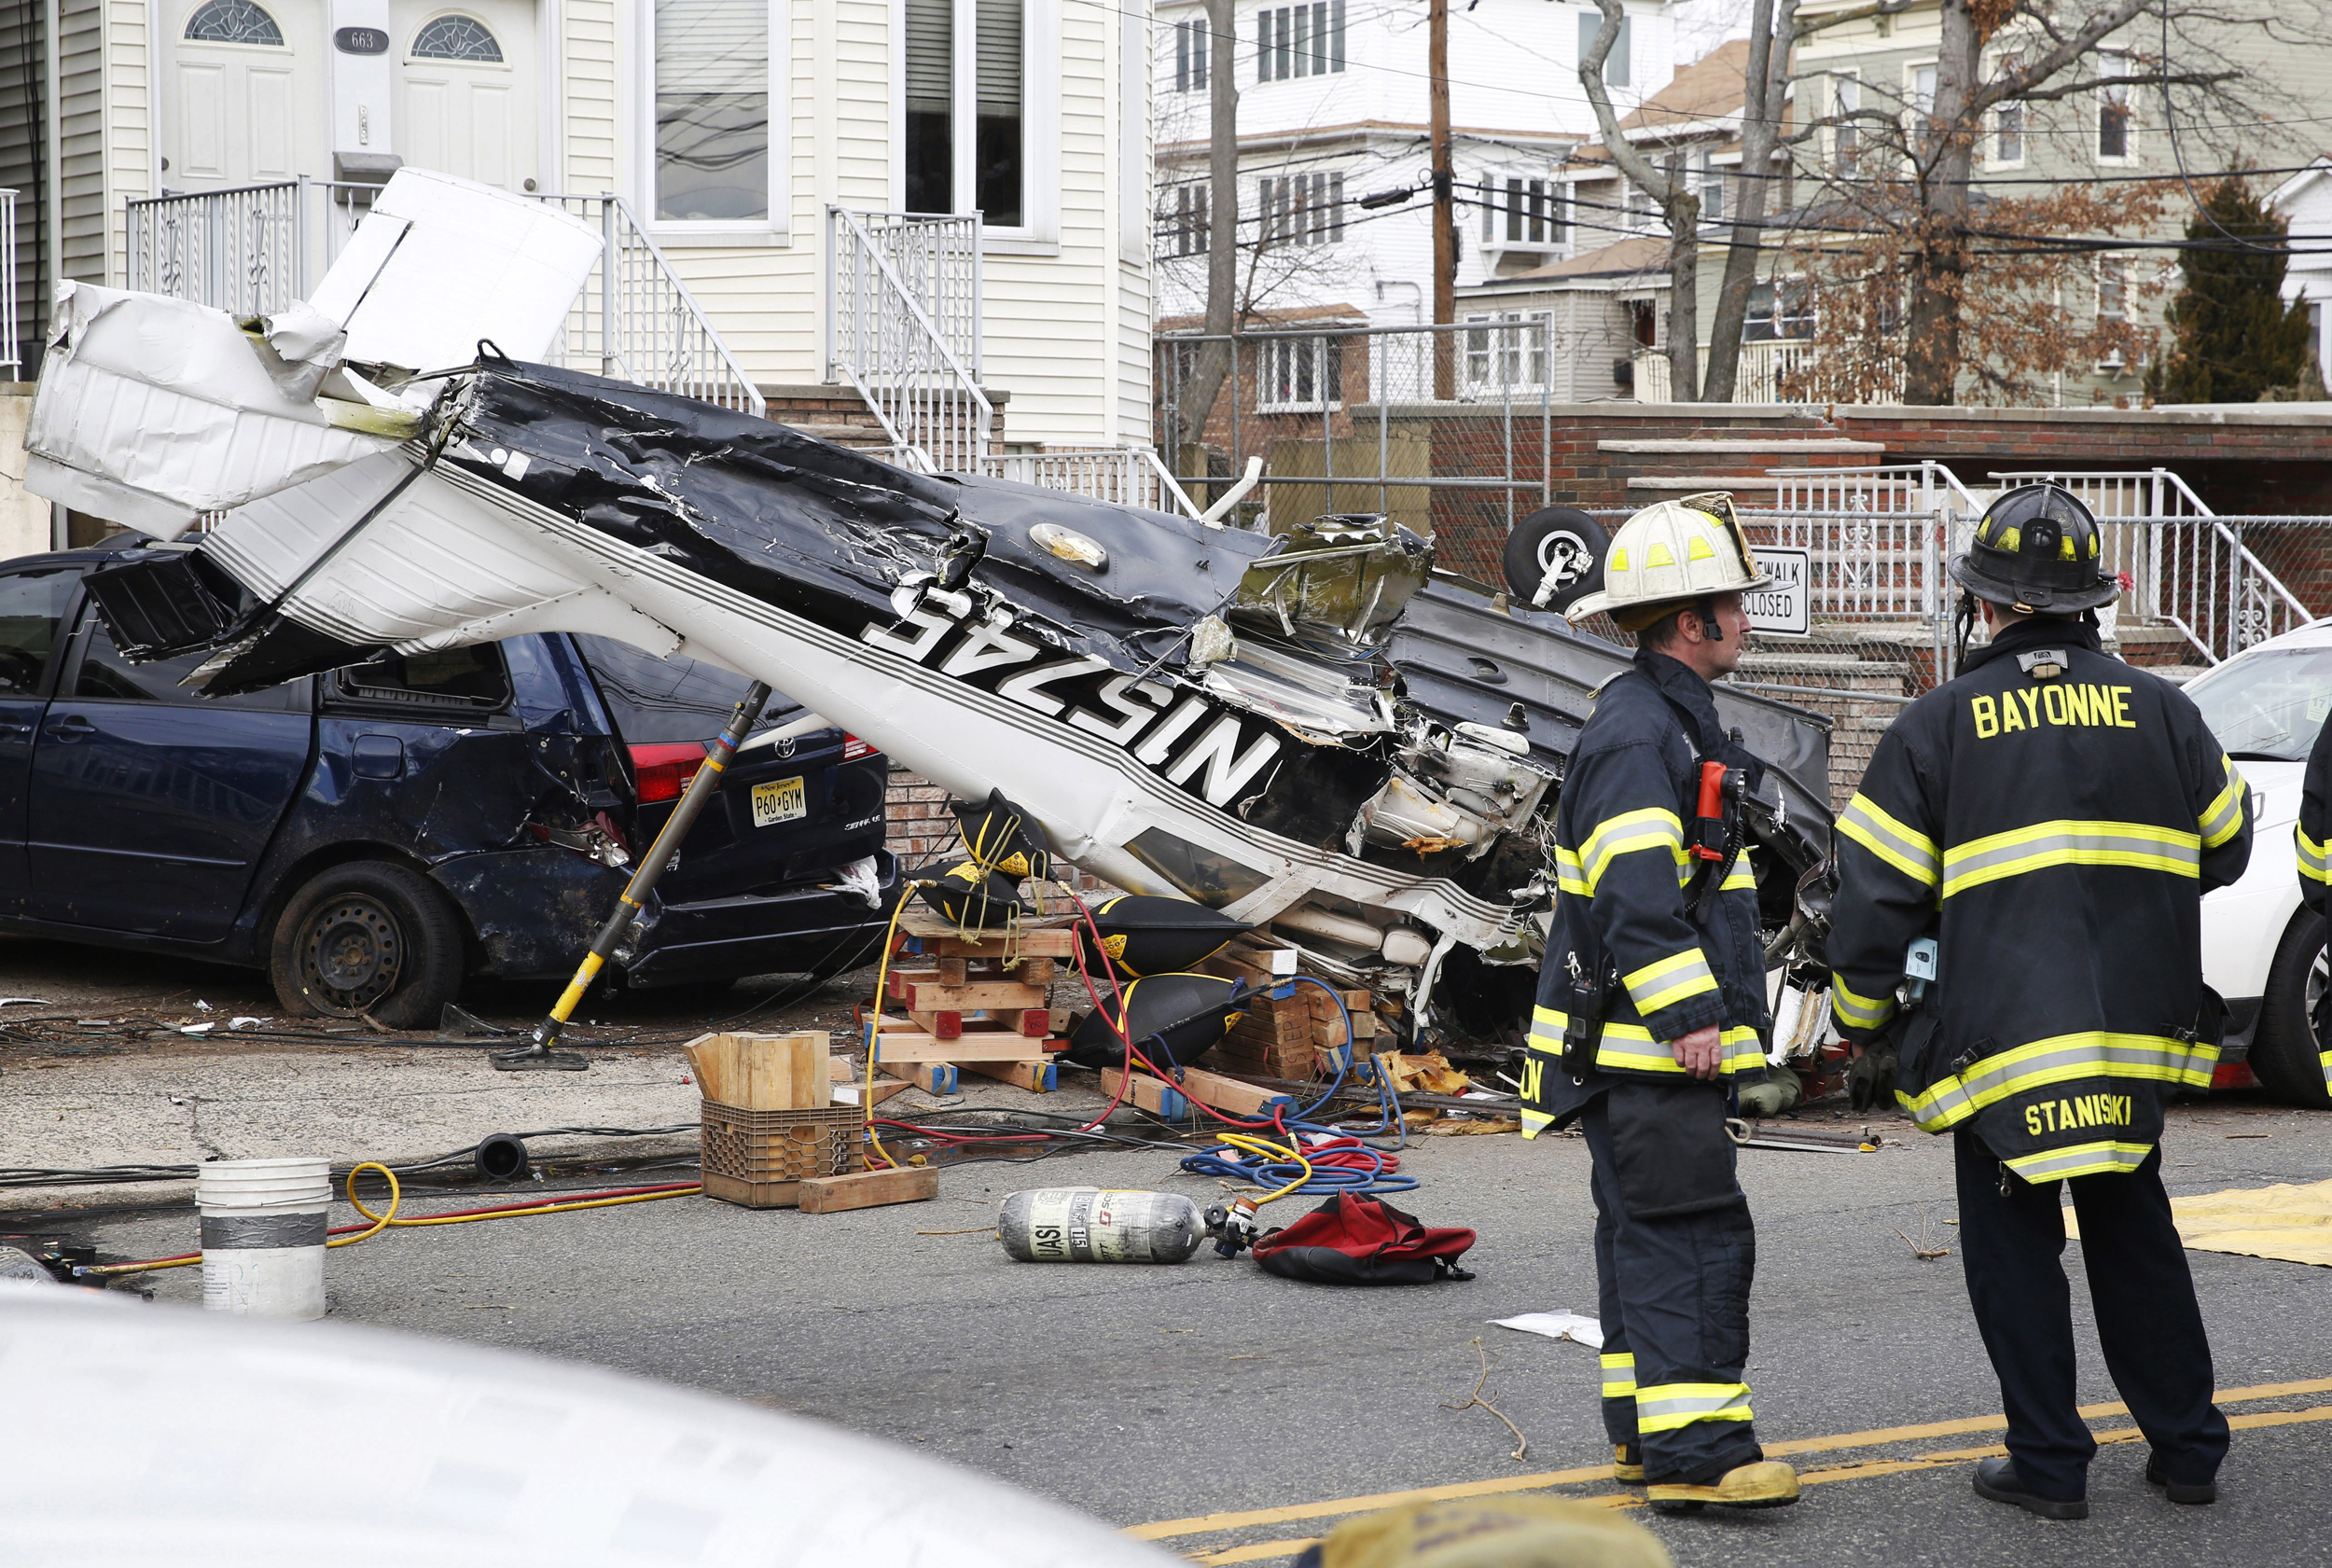 Small Plane Crashes in New Jersey With Pilot Trapped Inside Cockpit: Officials